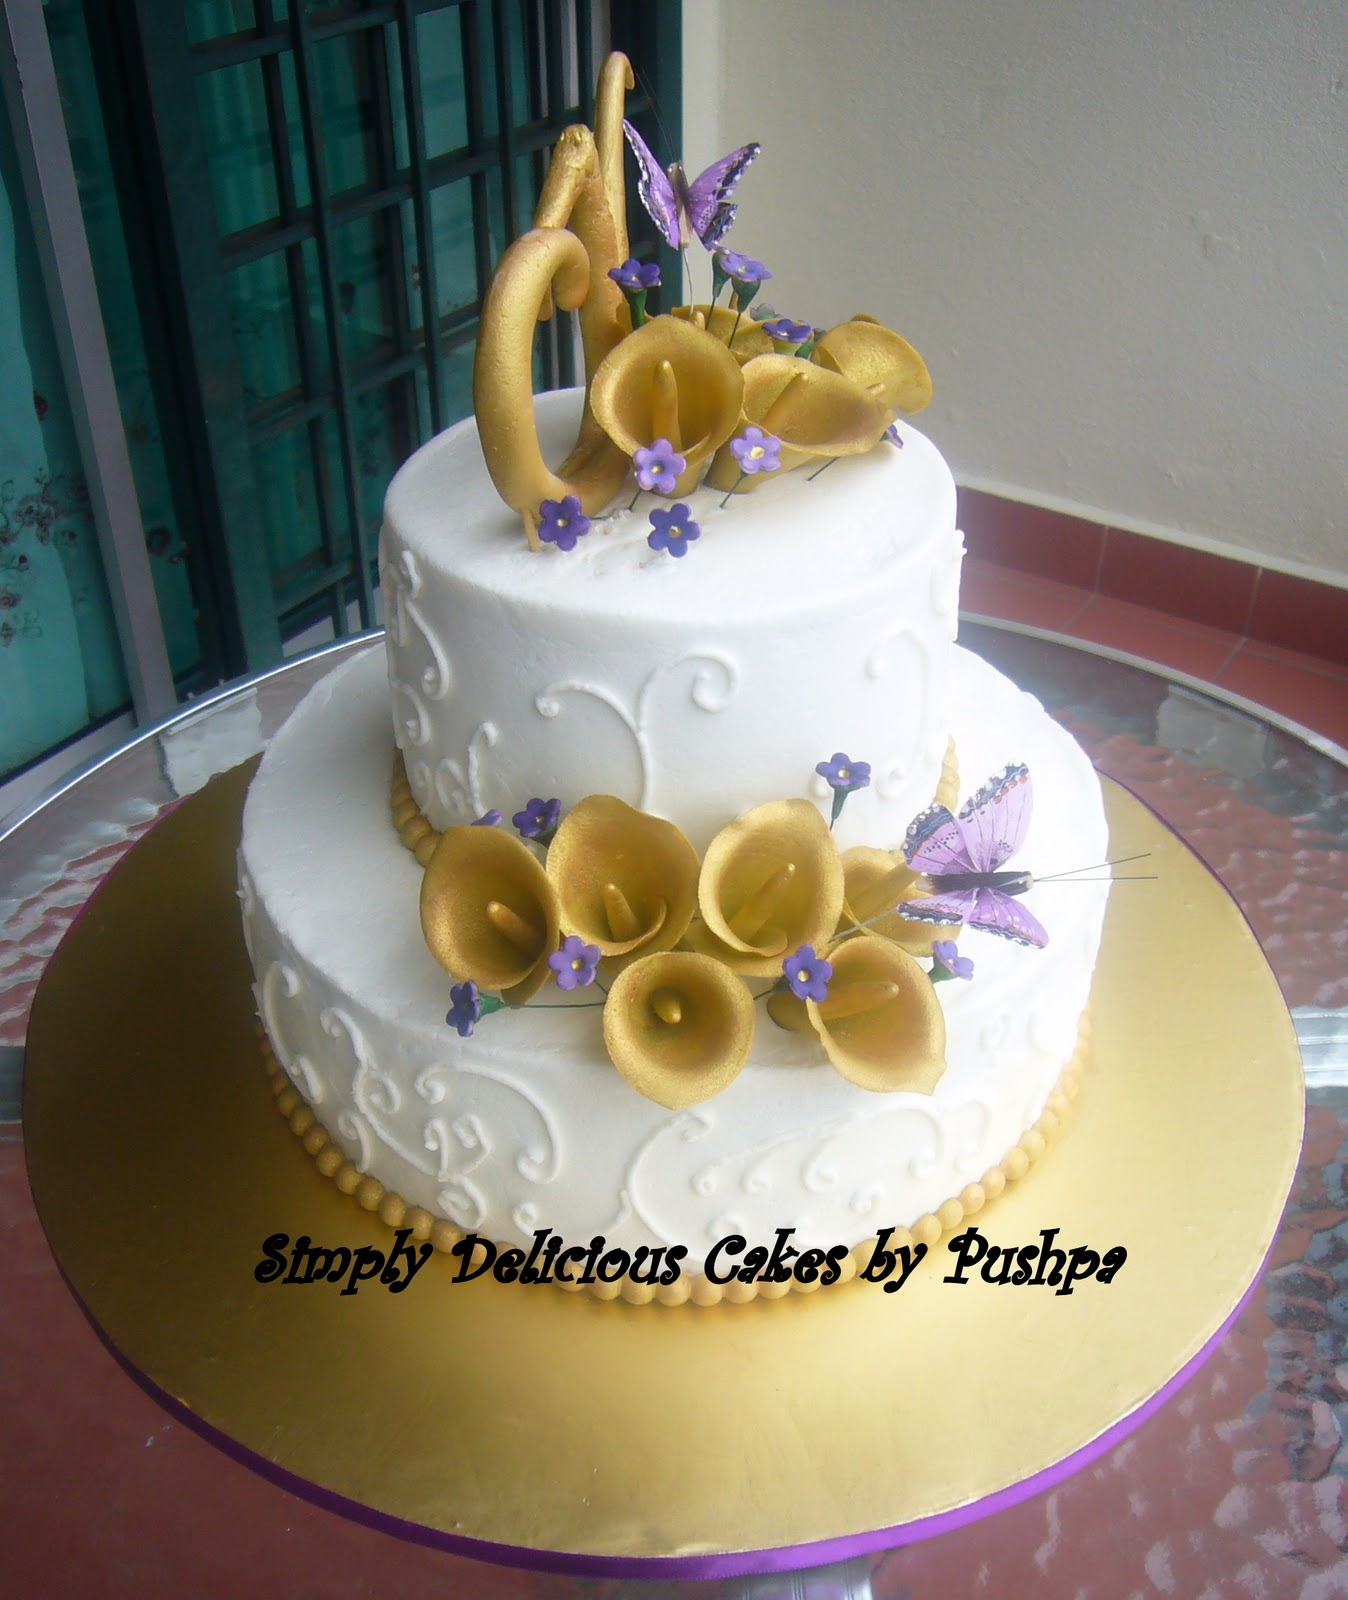 SIMPLY DELICIOUS CAKES Gold and Purple 2 Tier Cake